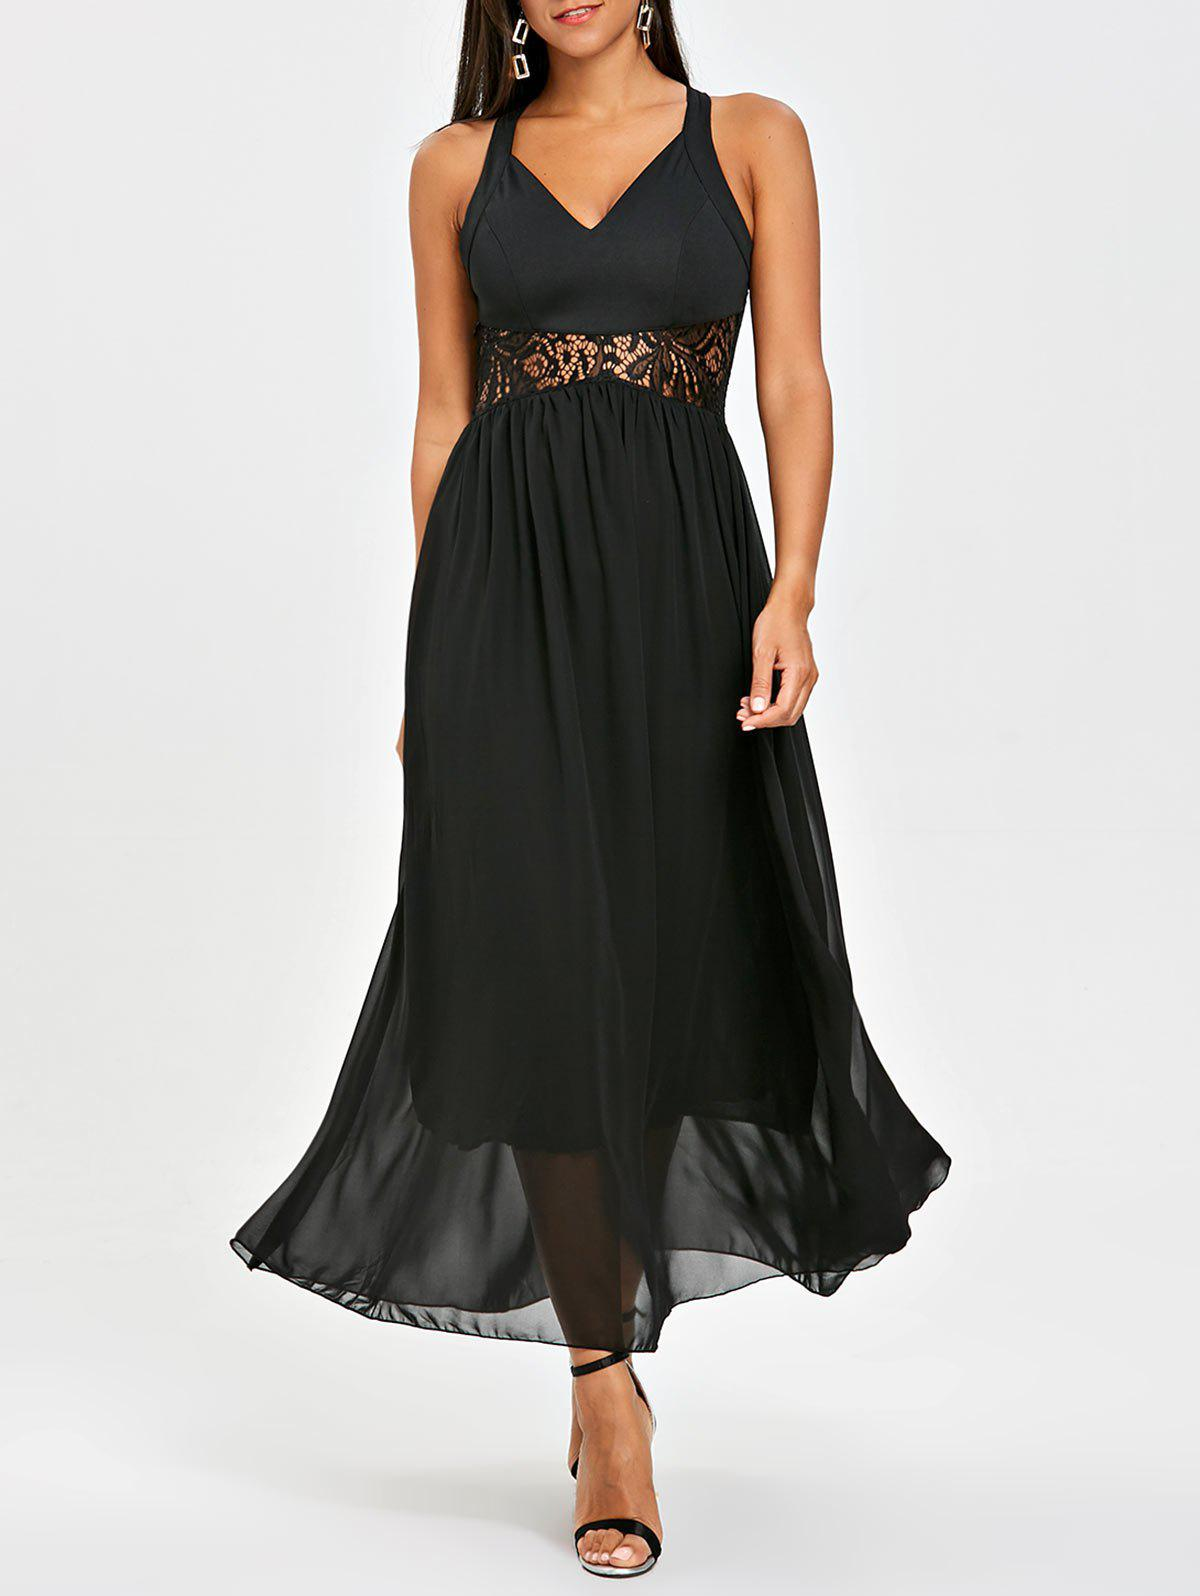 New Chiffon Racerback Lace Insert Long Dress